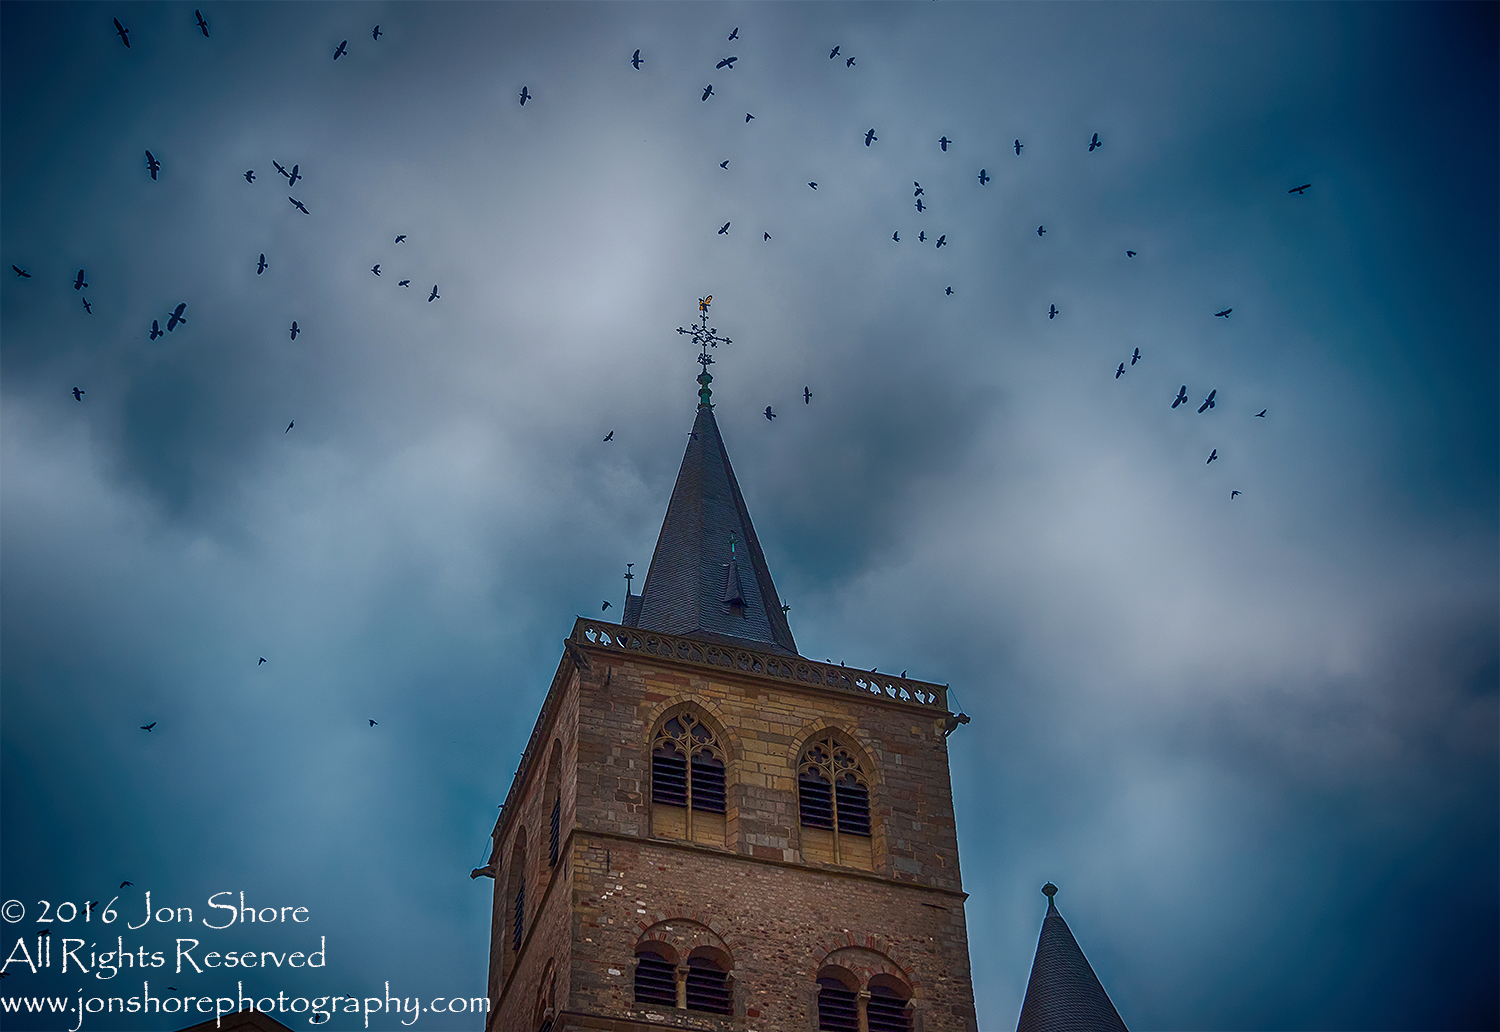 Crows atop Cathedral, Trier, Germany. Nikkor 300mm